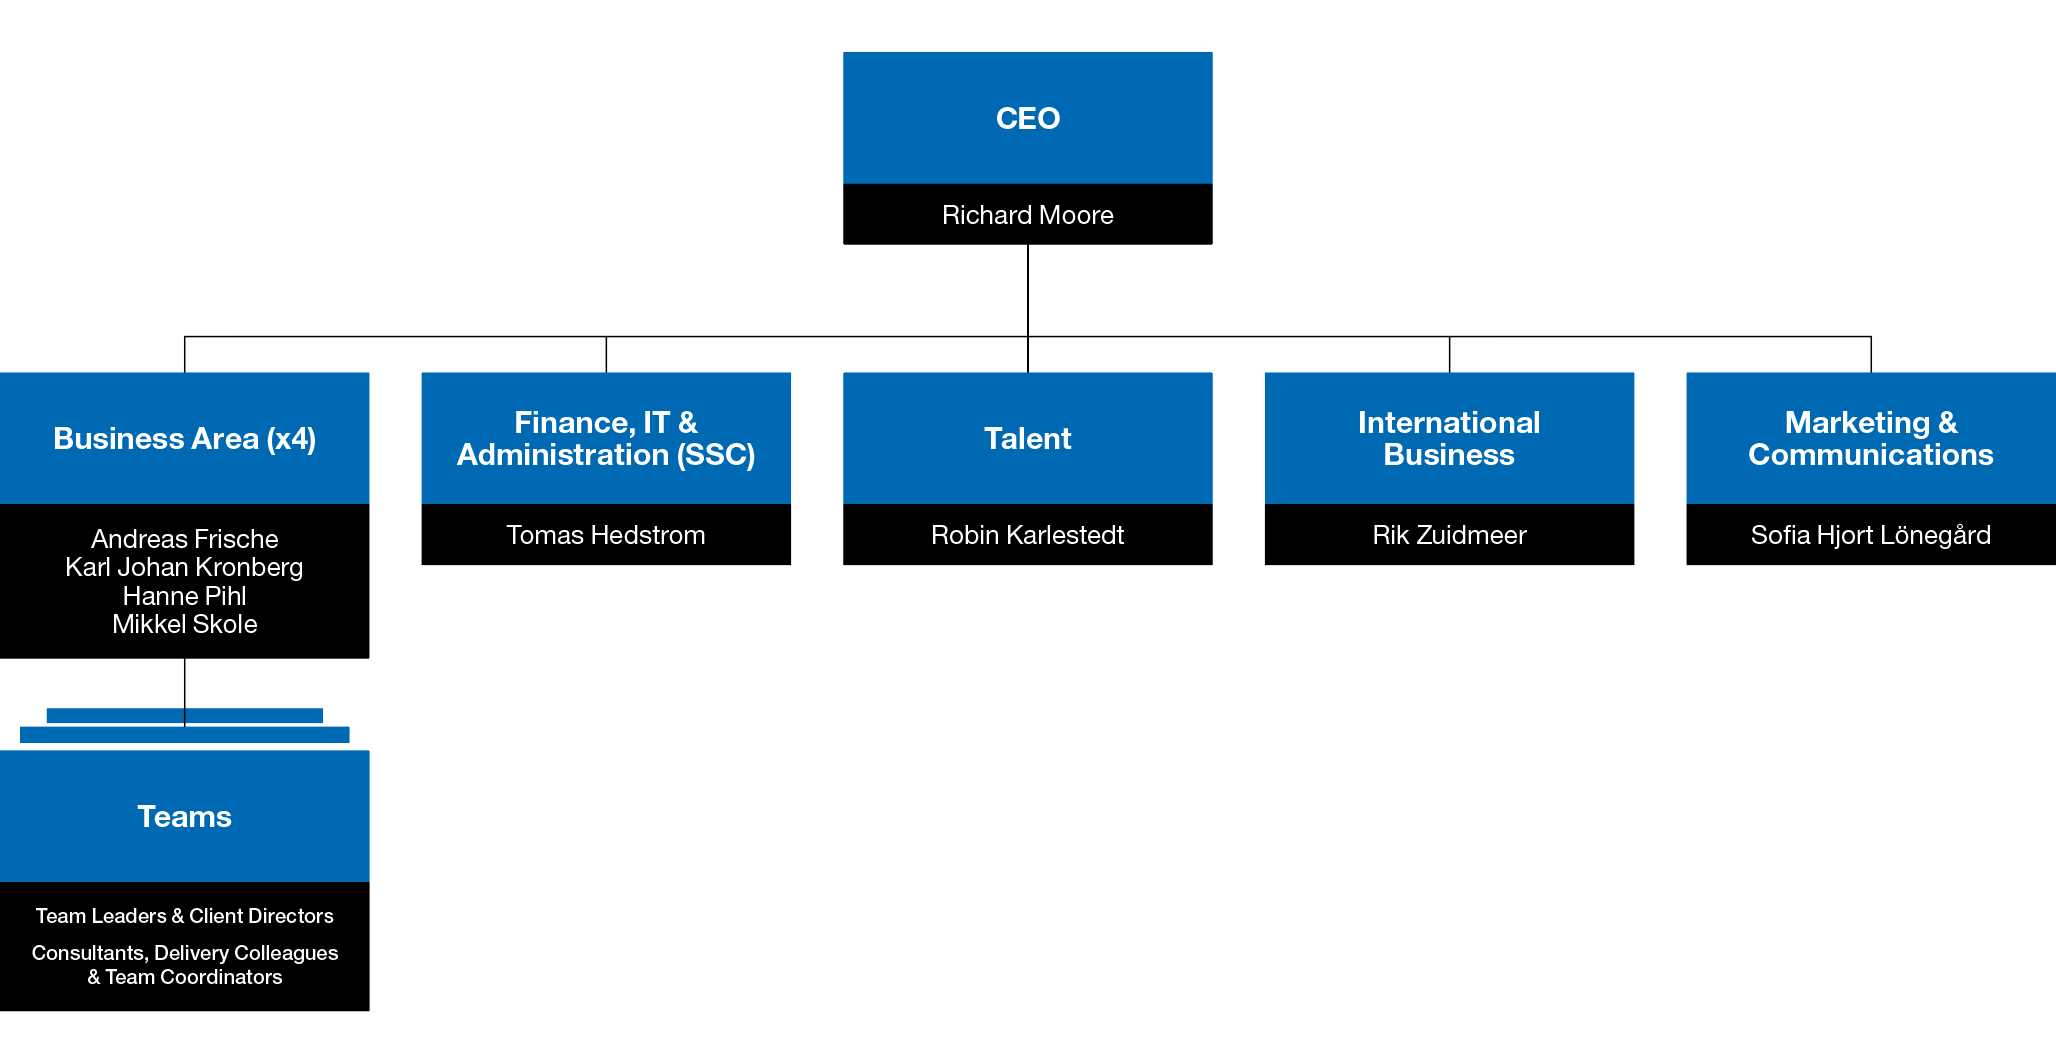 Organisational chart over Mercuri Urval